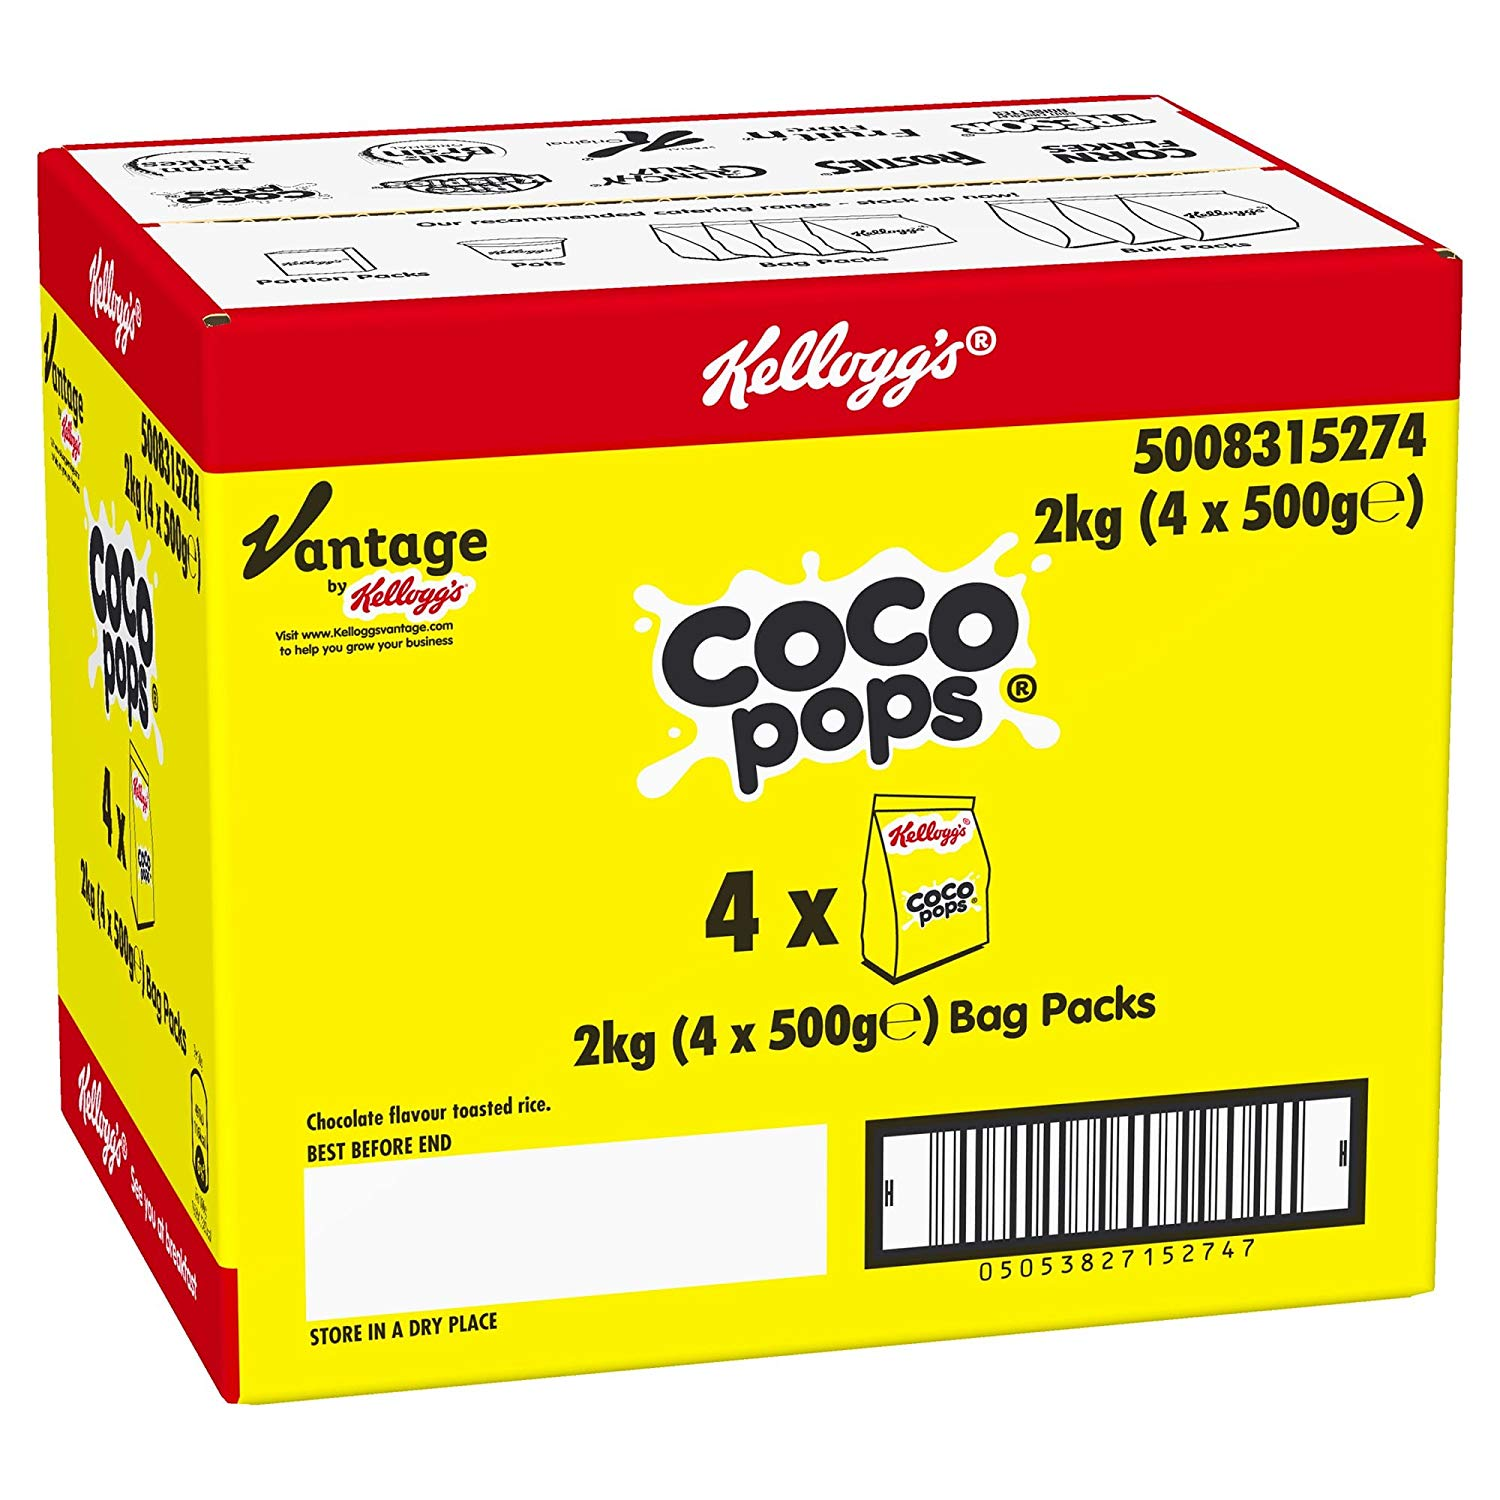 Coco Pops Kellogg's Bag Pack, 2 kg